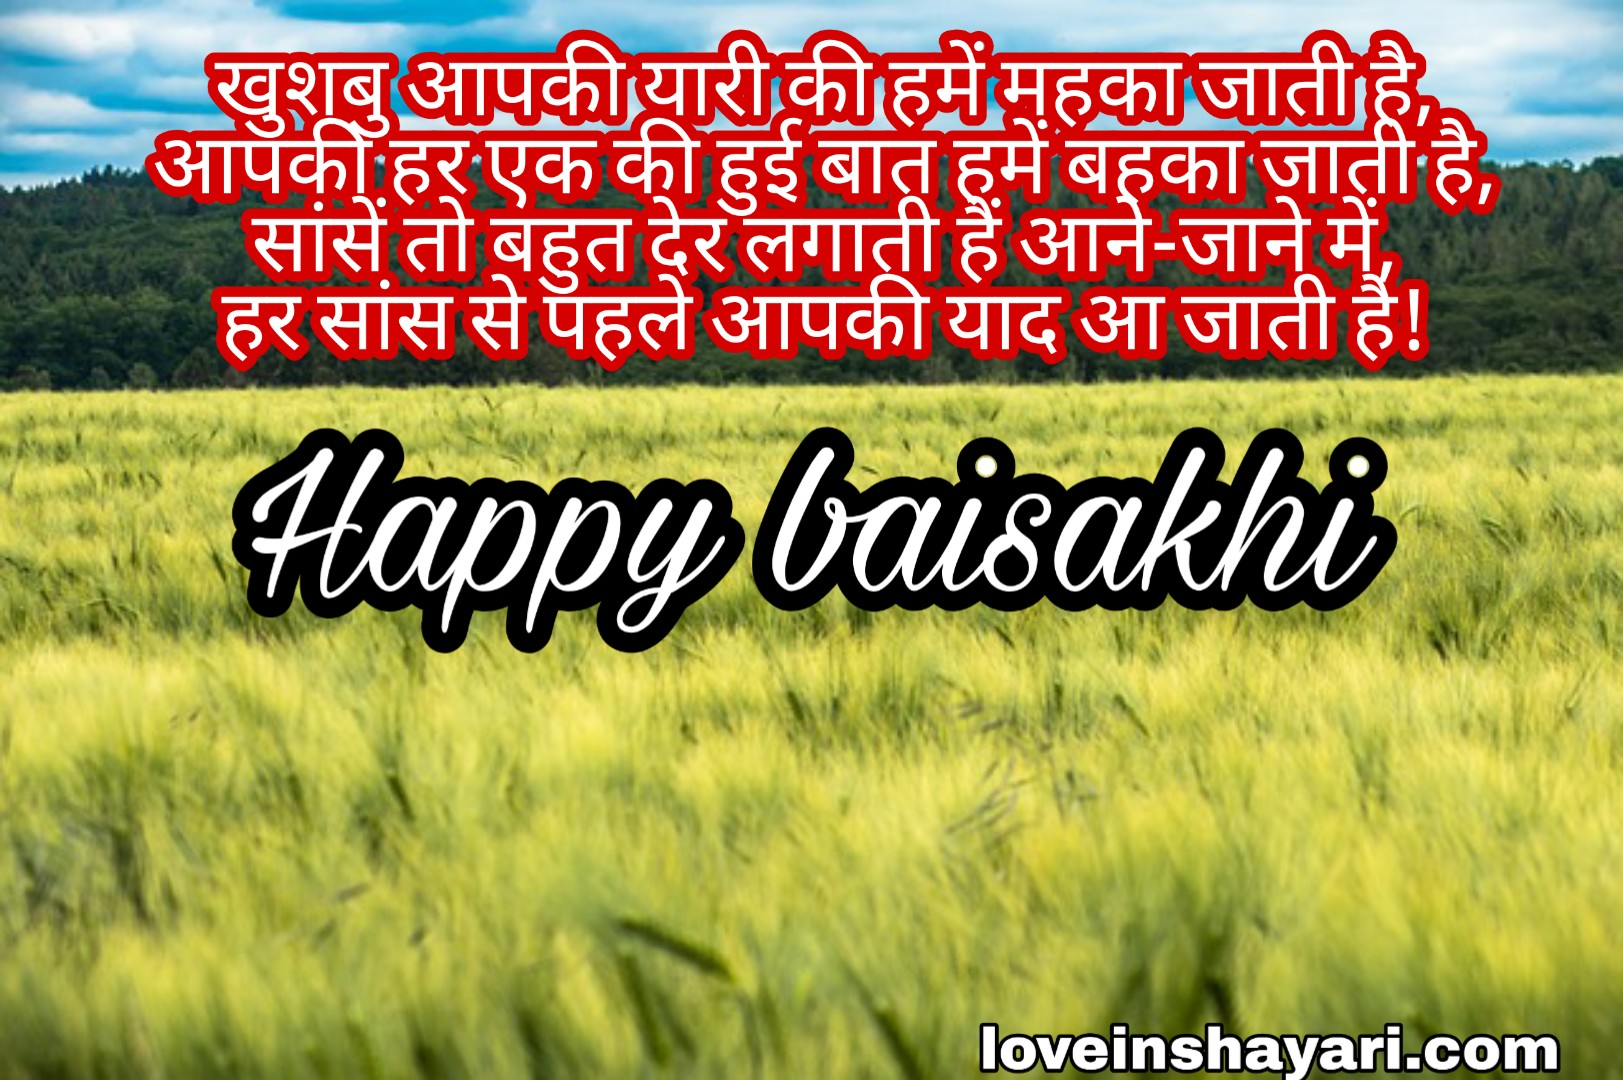 Photo of Baisakhi wishes shayari quotes messages 2020